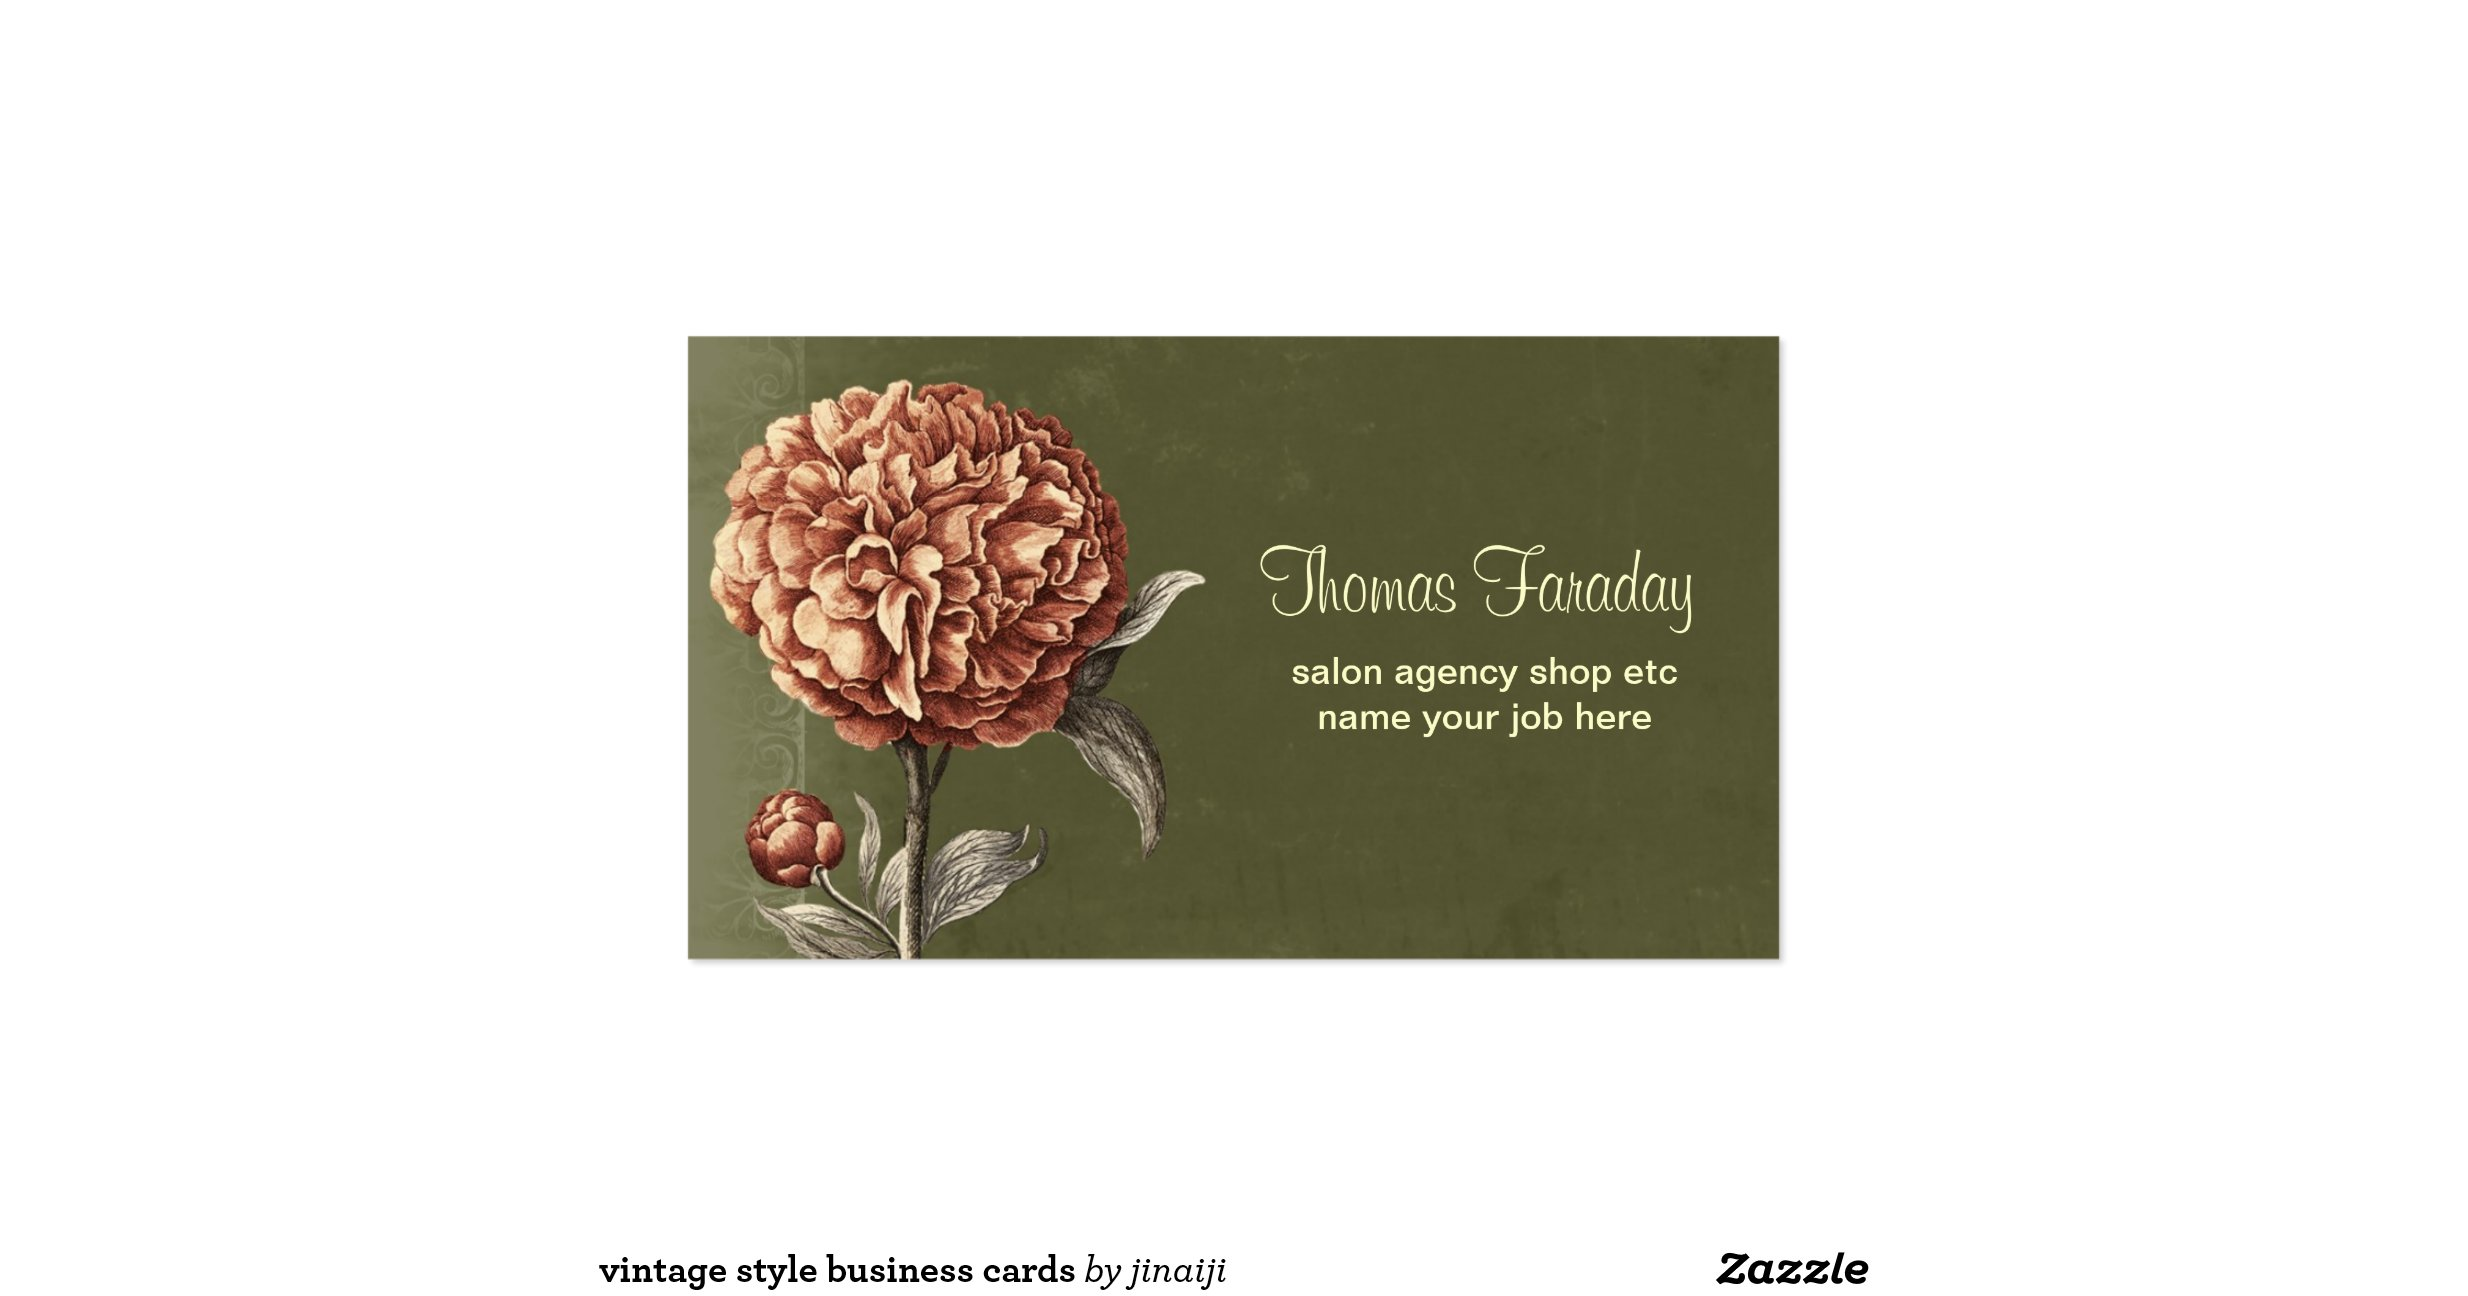 Vintage style business cards for Business cards vintage style